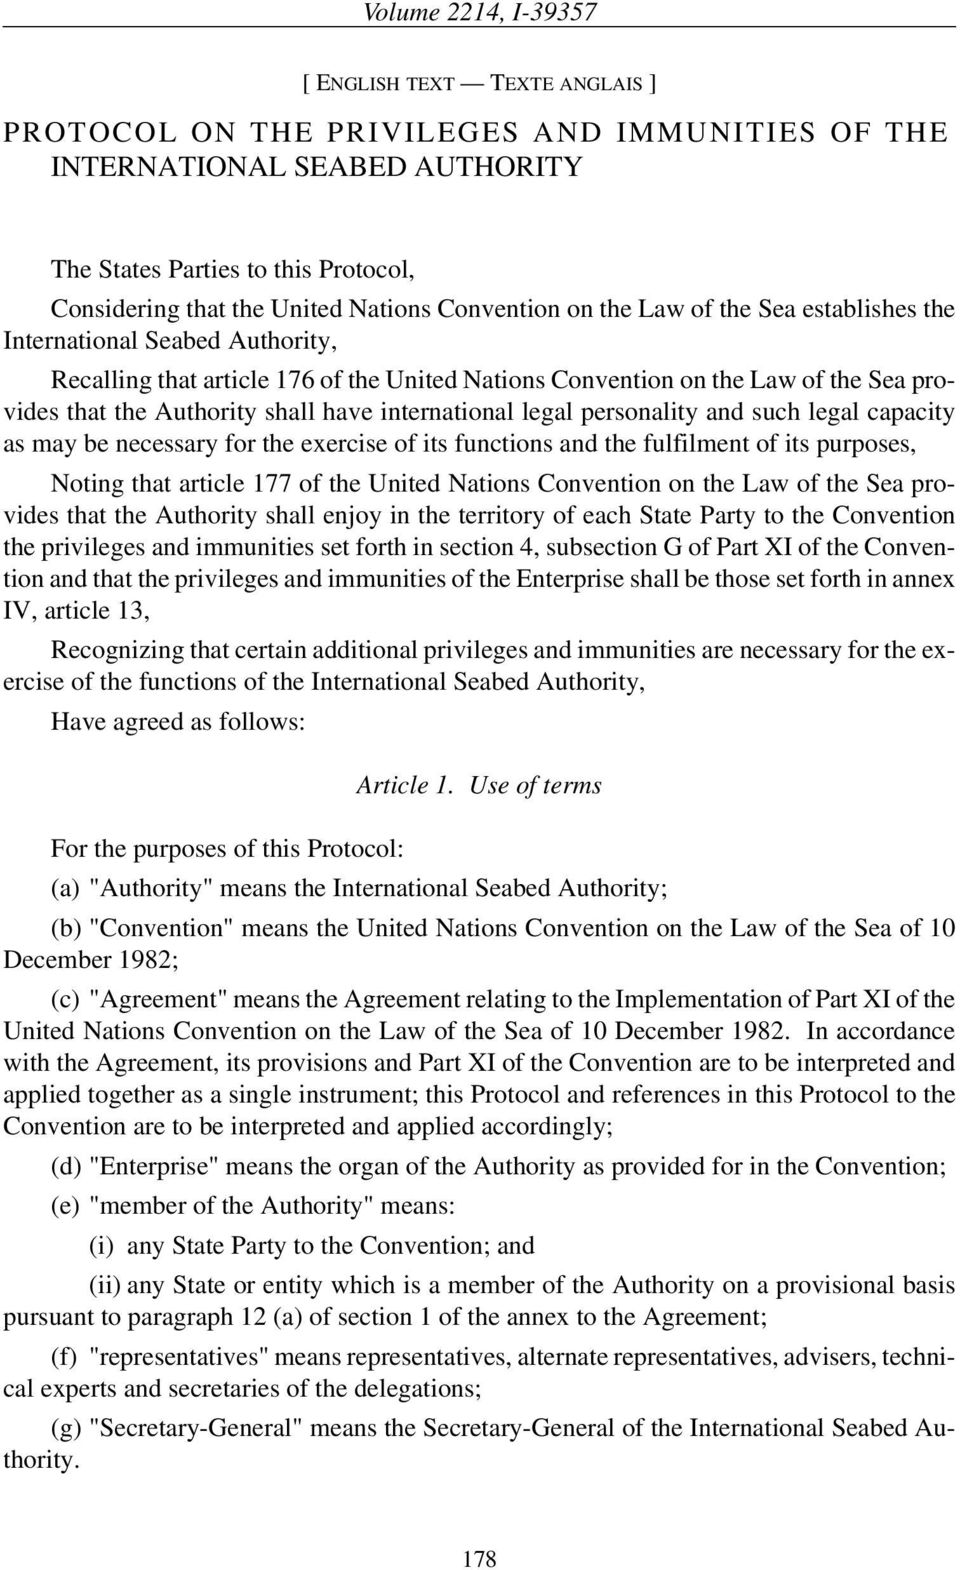 international legal personality and such legal capacity as may be necessary for the exercise of its functions and the fulfilment of its purposes, Noting that article 177 of the United Nations